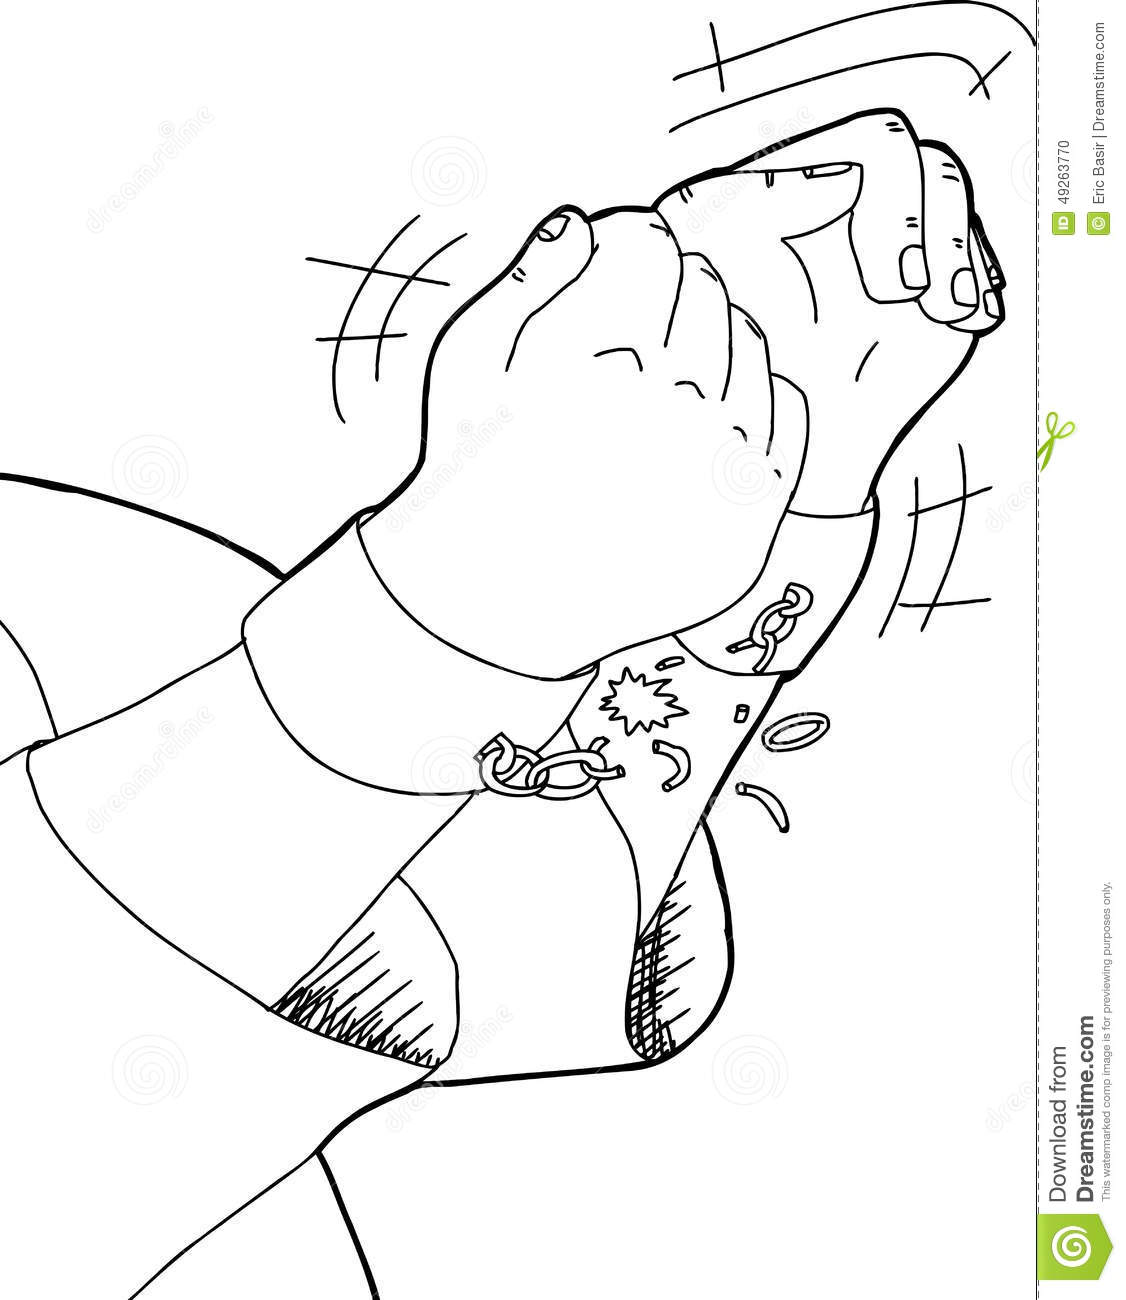 Outline Of Hands Breaking Shackles Stock Illustration